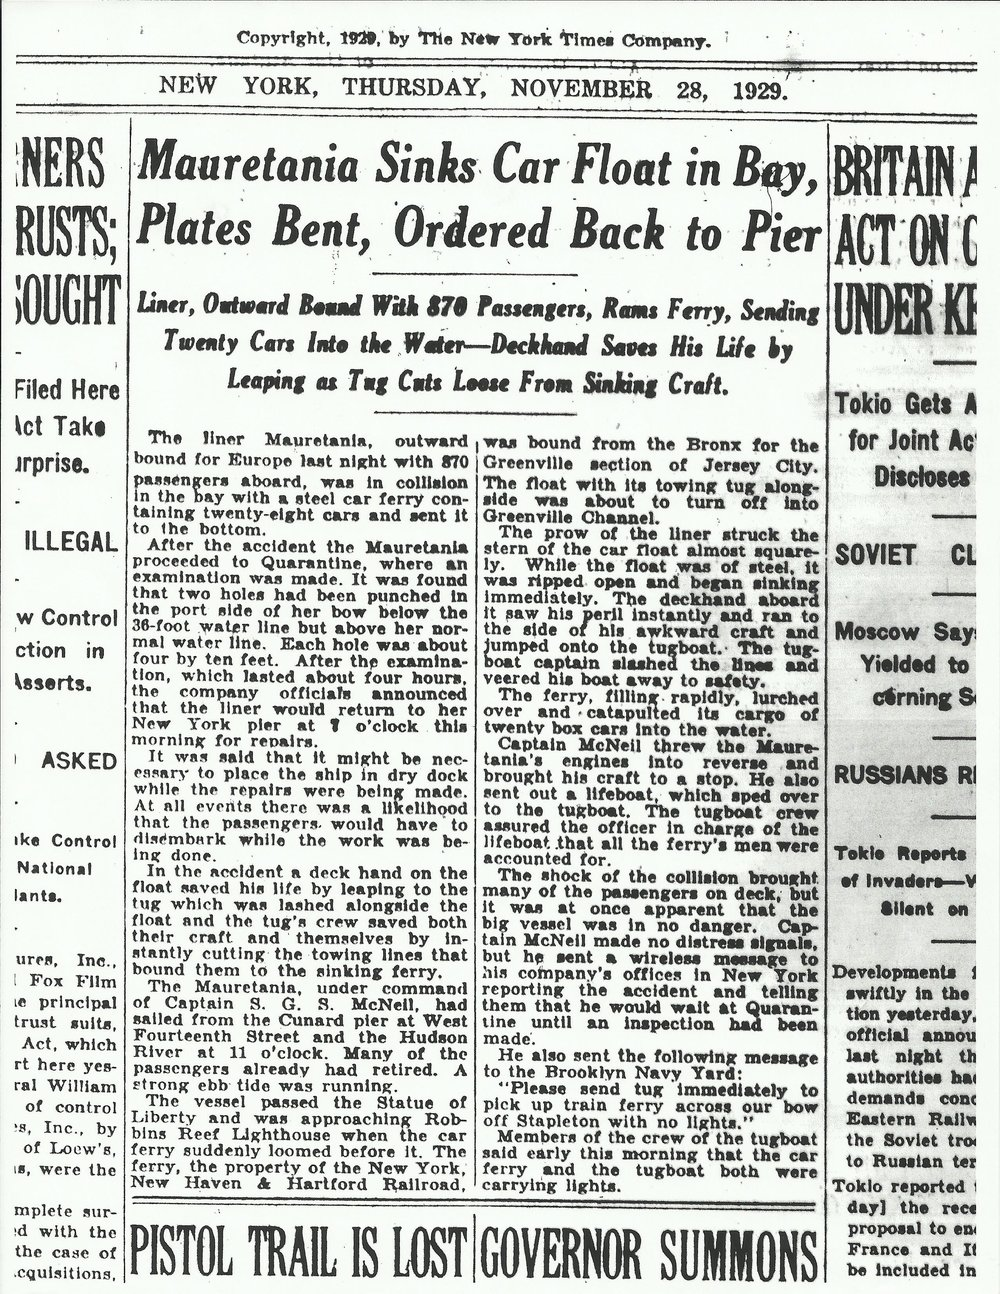 The report in the New York Times of the collision that turned Dr. Fullerton's ship back to port.